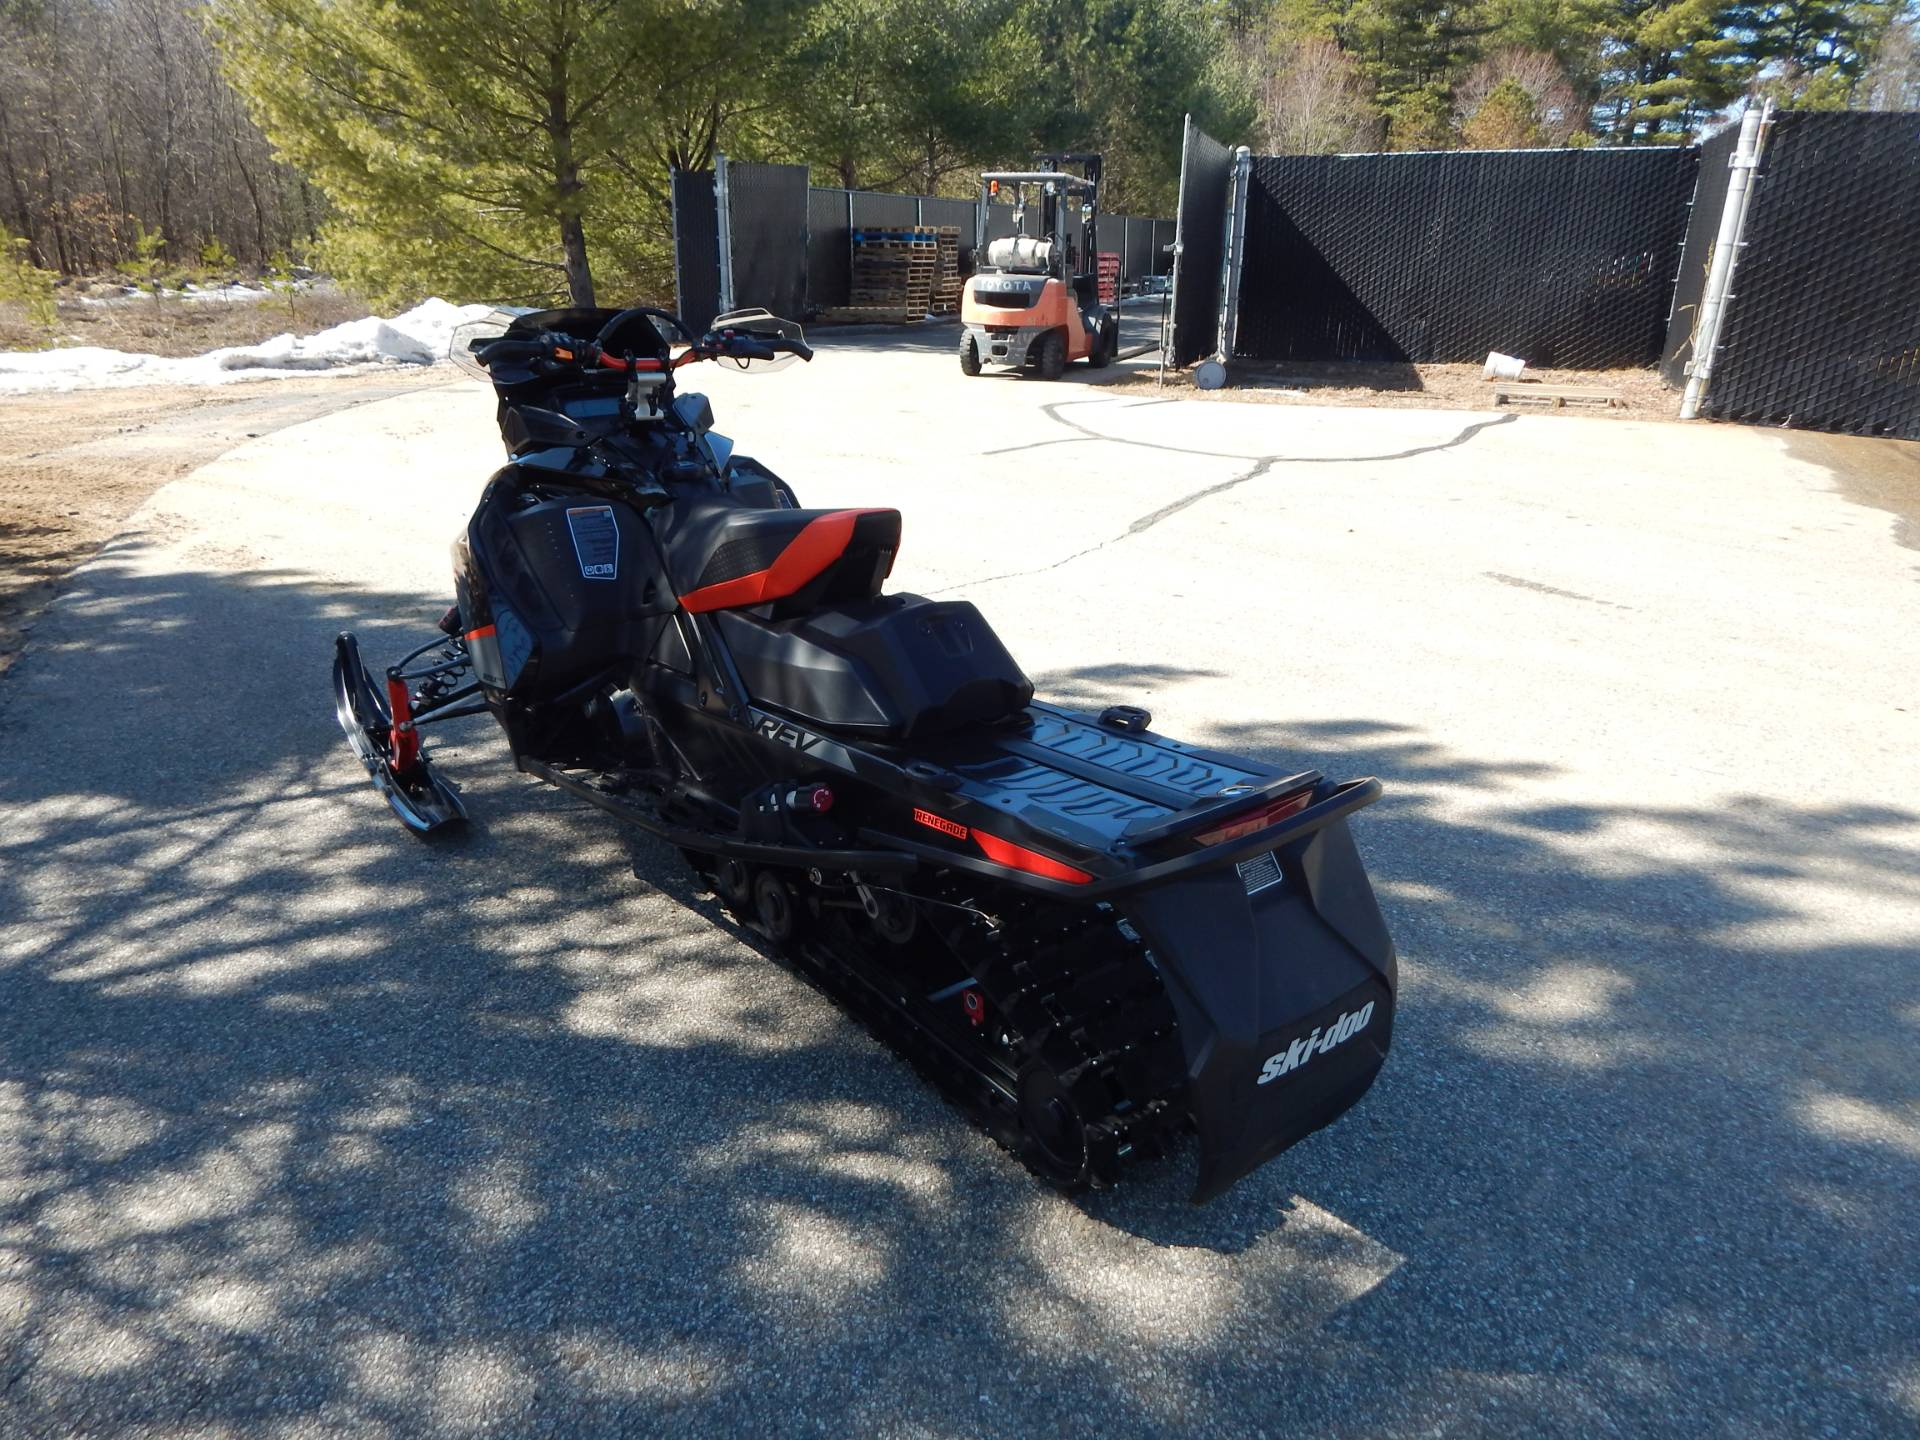 2020 Ski-Doo Renegade X-RS 850 E-Tec in Concord, New Hampshire - Photo 7